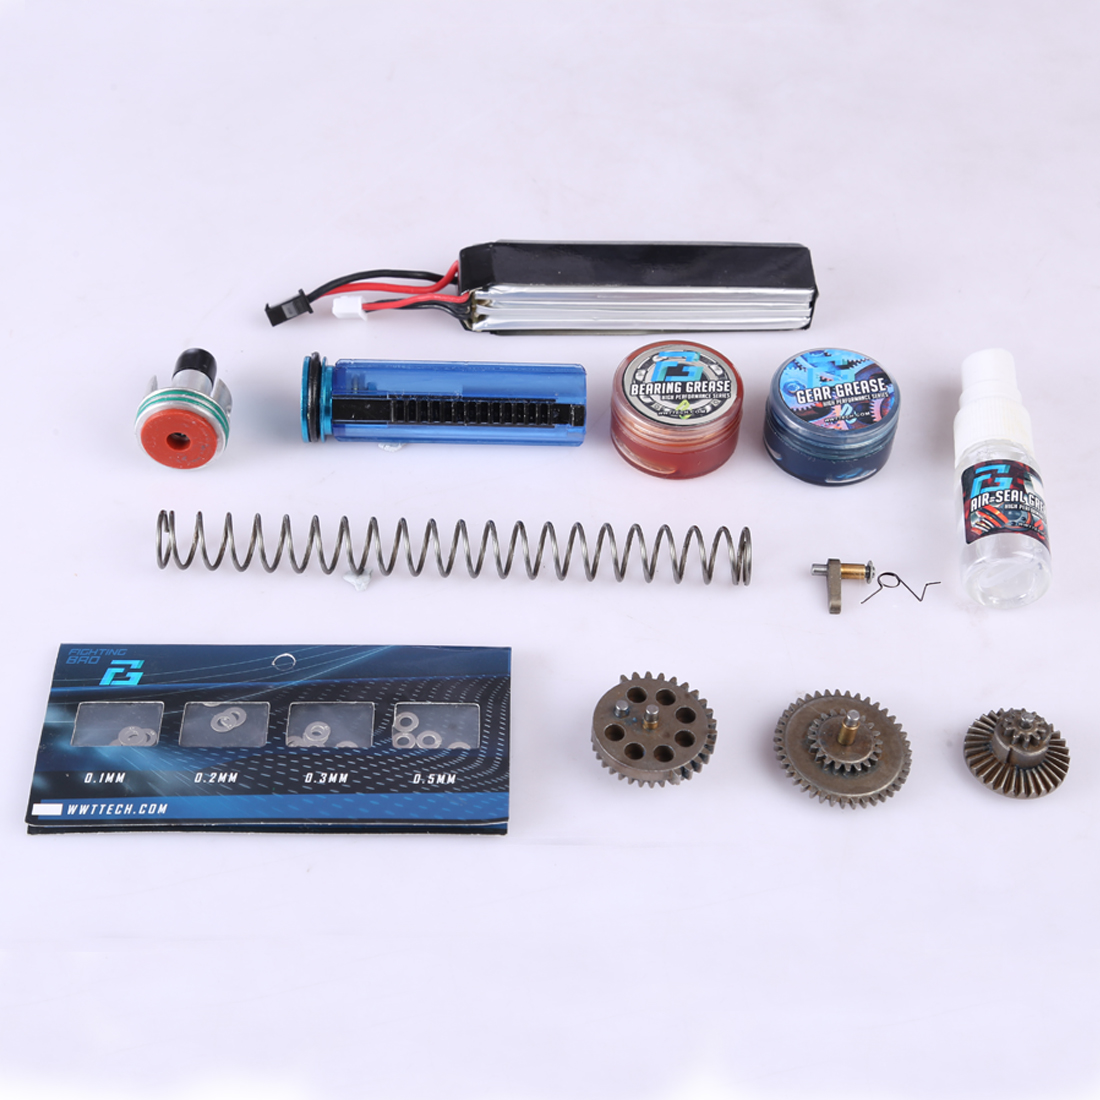 DIY Jinming Gear Box Basic Modification Kit For Jinming Gen 8 M4 And Gen 2 Scar